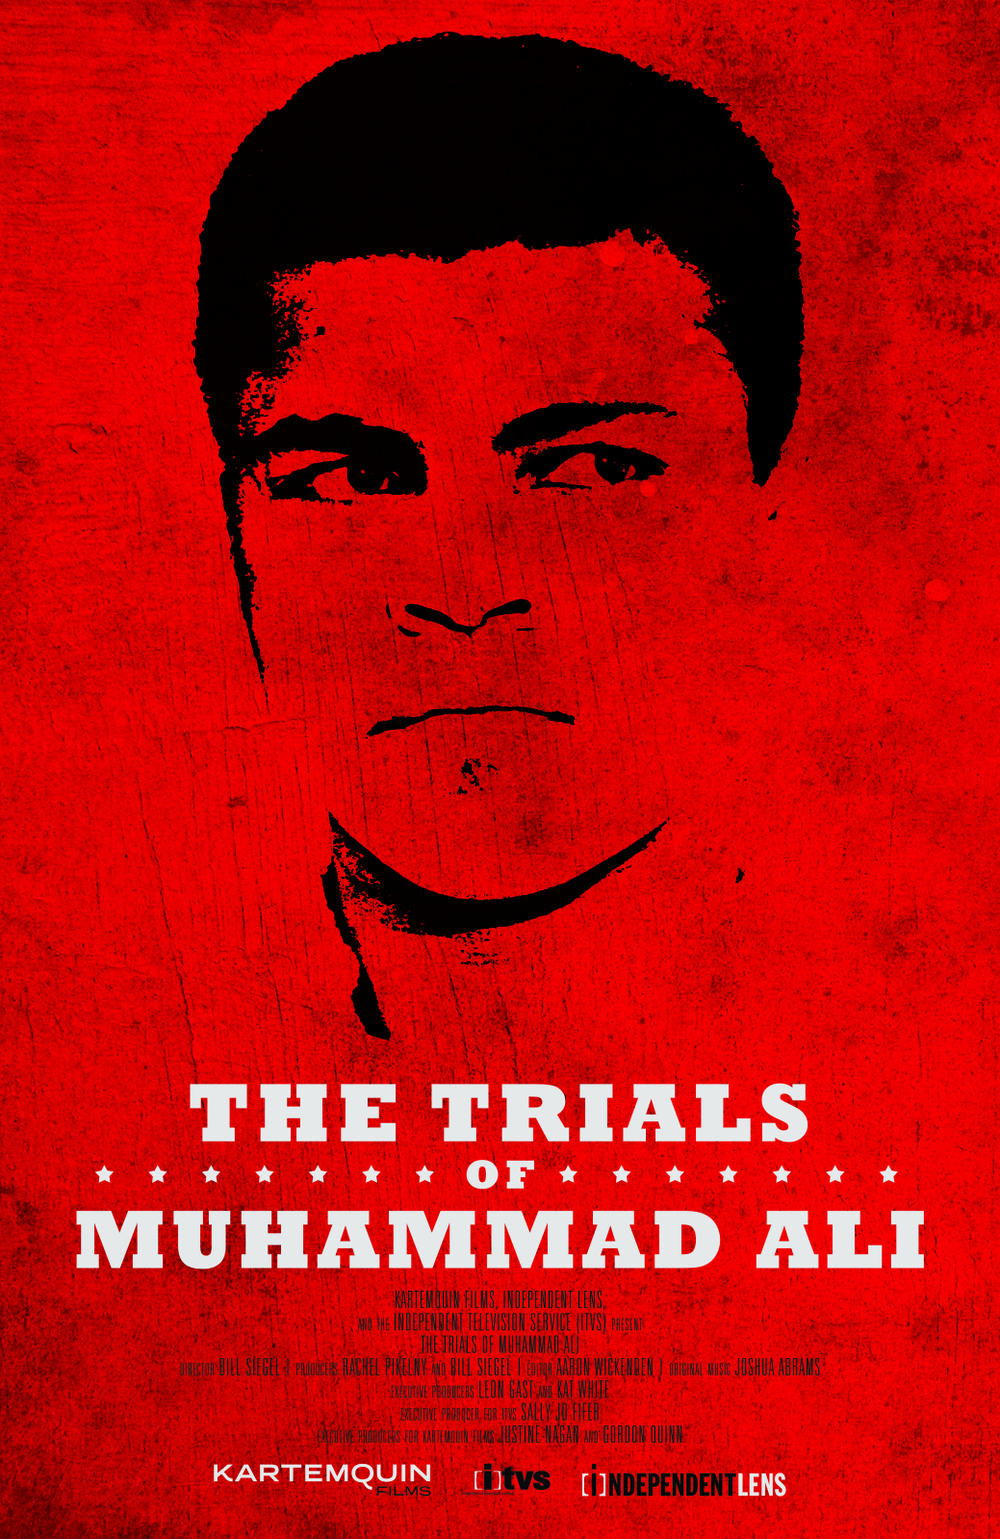 THE TRIALS OF MUHAMMED ALI